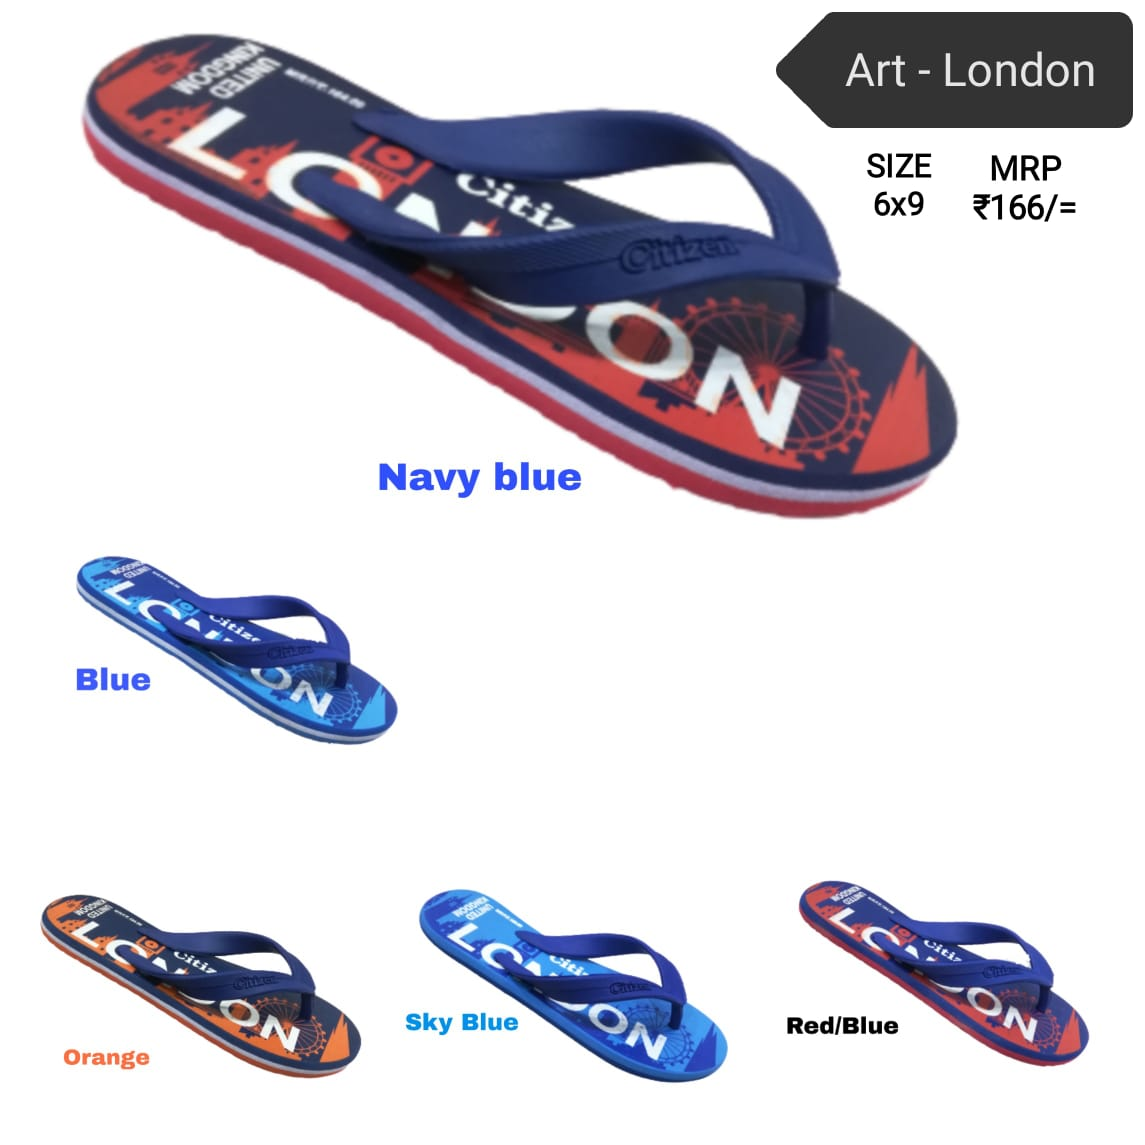 Citizen gents hawai - london flip flop , slippers , shoes